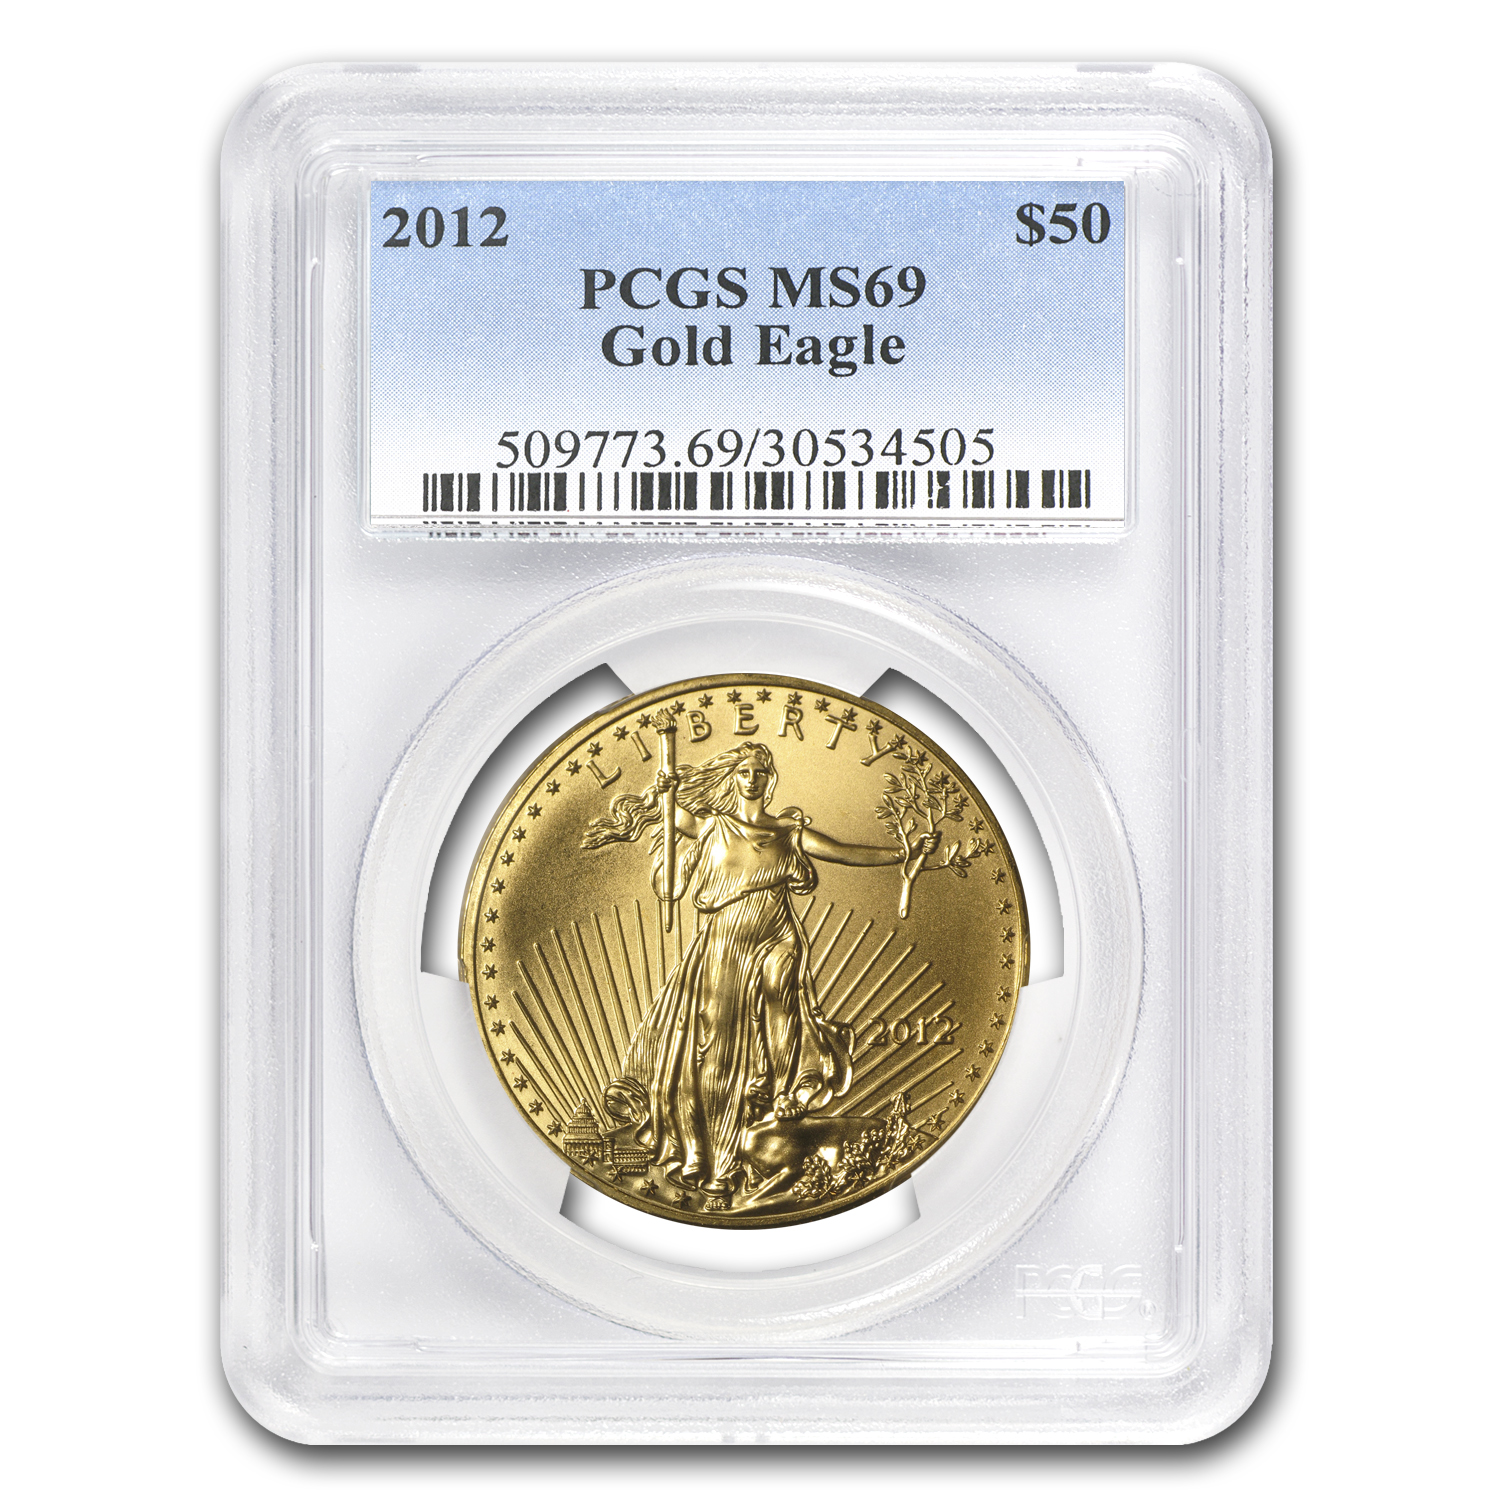 2012 1 oz Gold American Eagle MS-69 PCGS